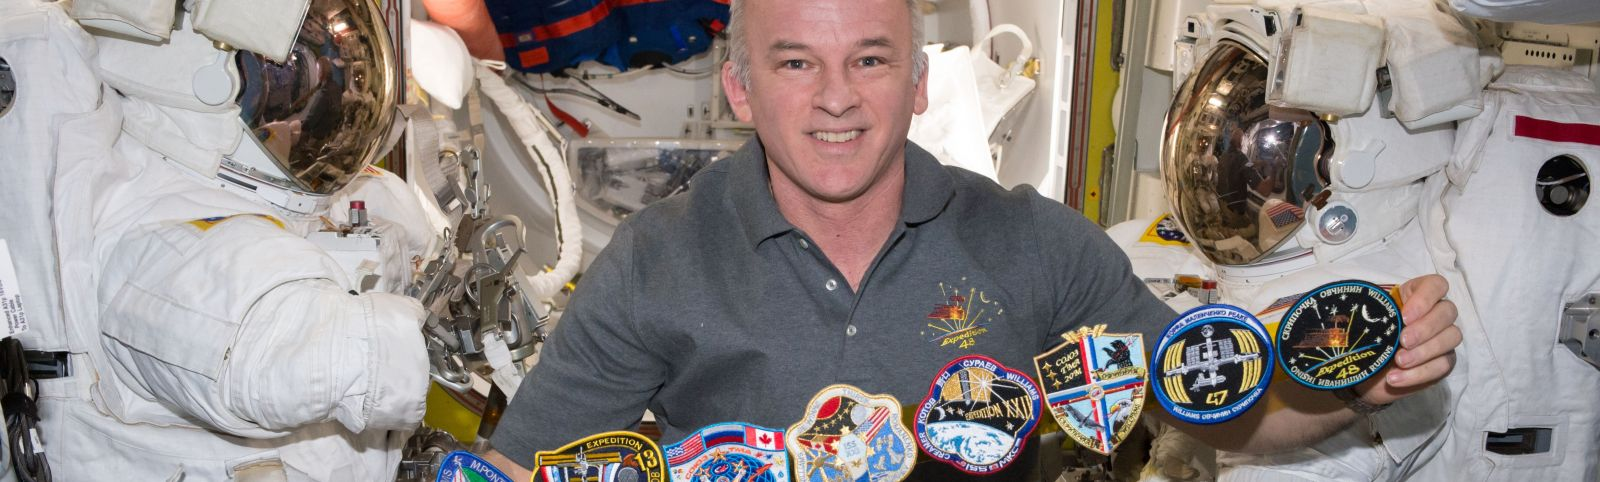 Jeff Williams shows off his mission patches. Click for full image. Photo Credit: NASA